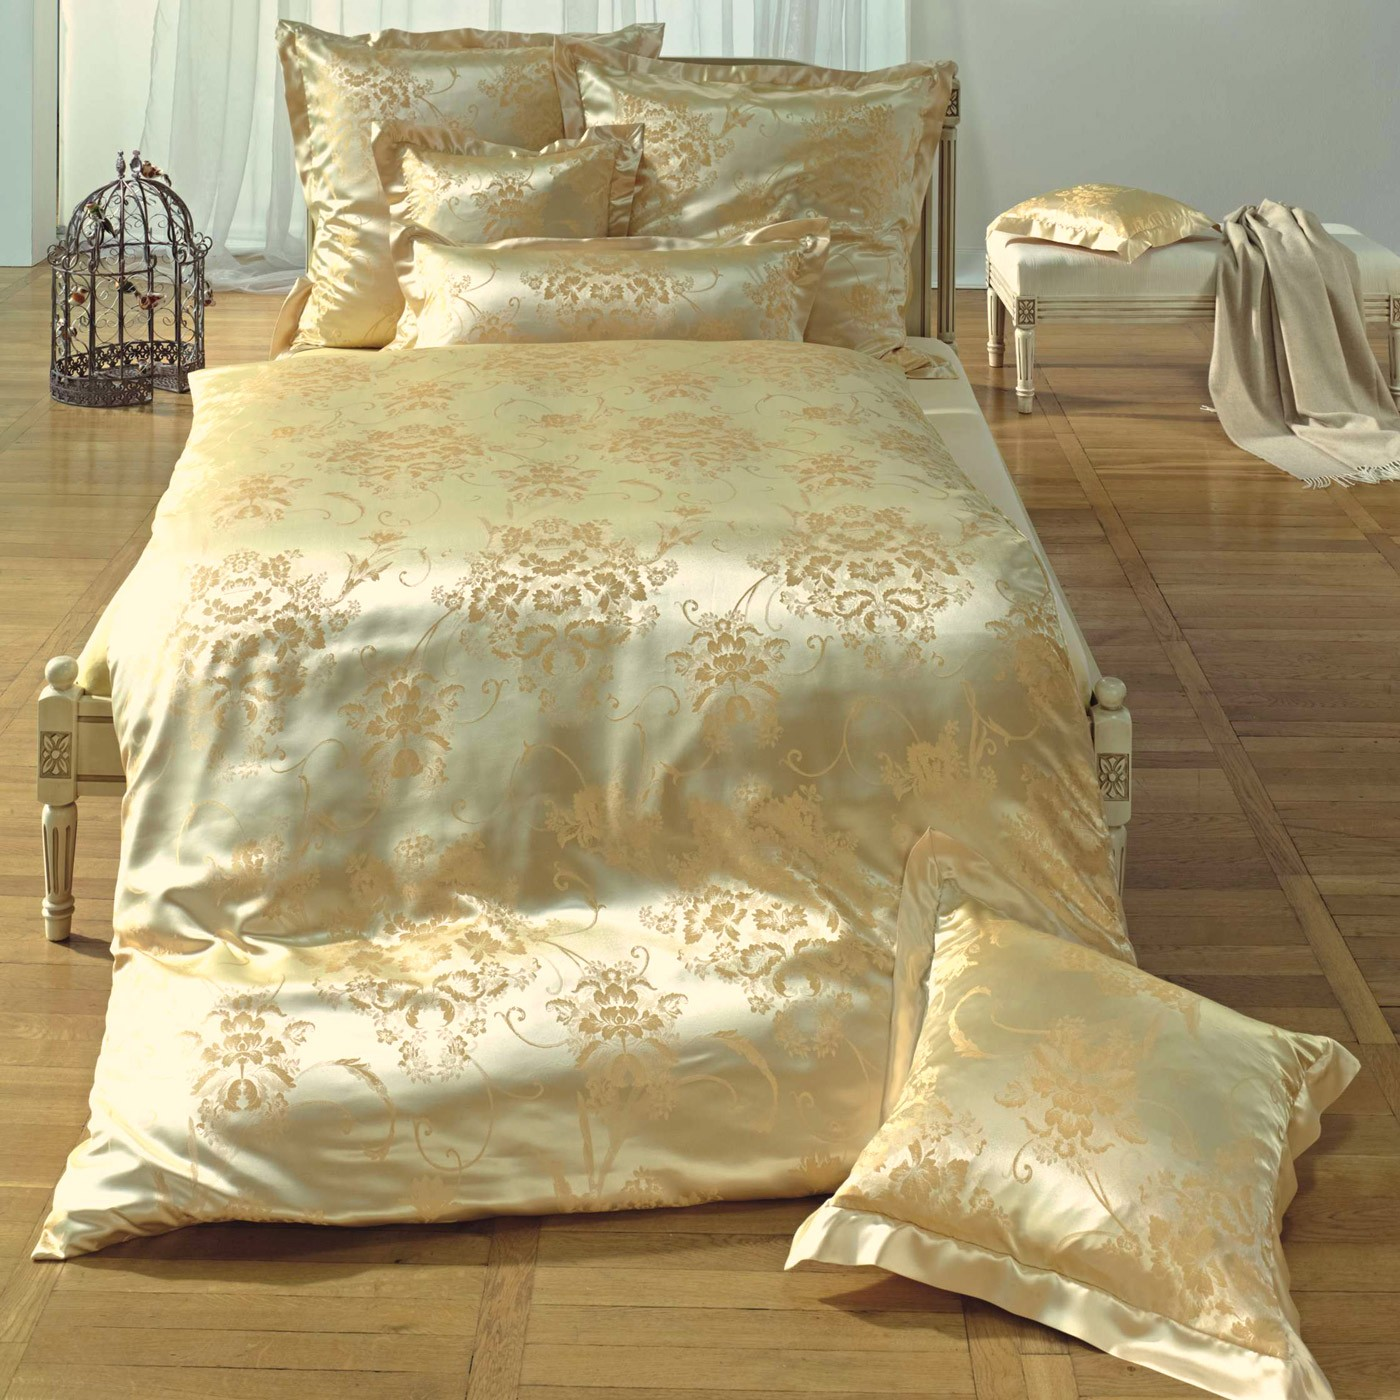 bettw sche curt bauer marie antoinette gold. Black Bedroom Furniture Sets. Home Design Ideas